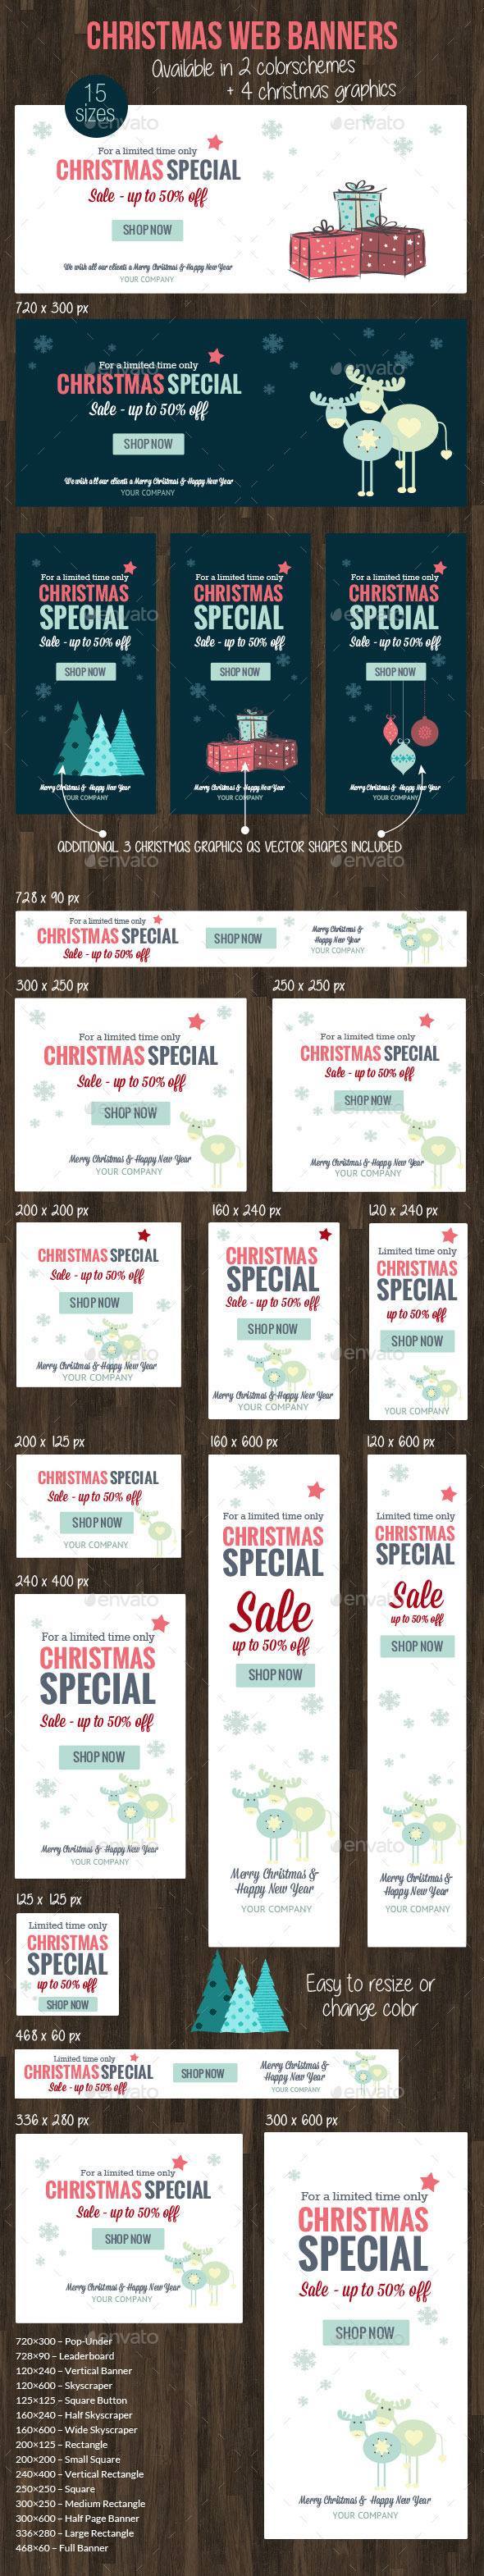 Christmas Web Banner 2015 - Banners & Ads Web Elements